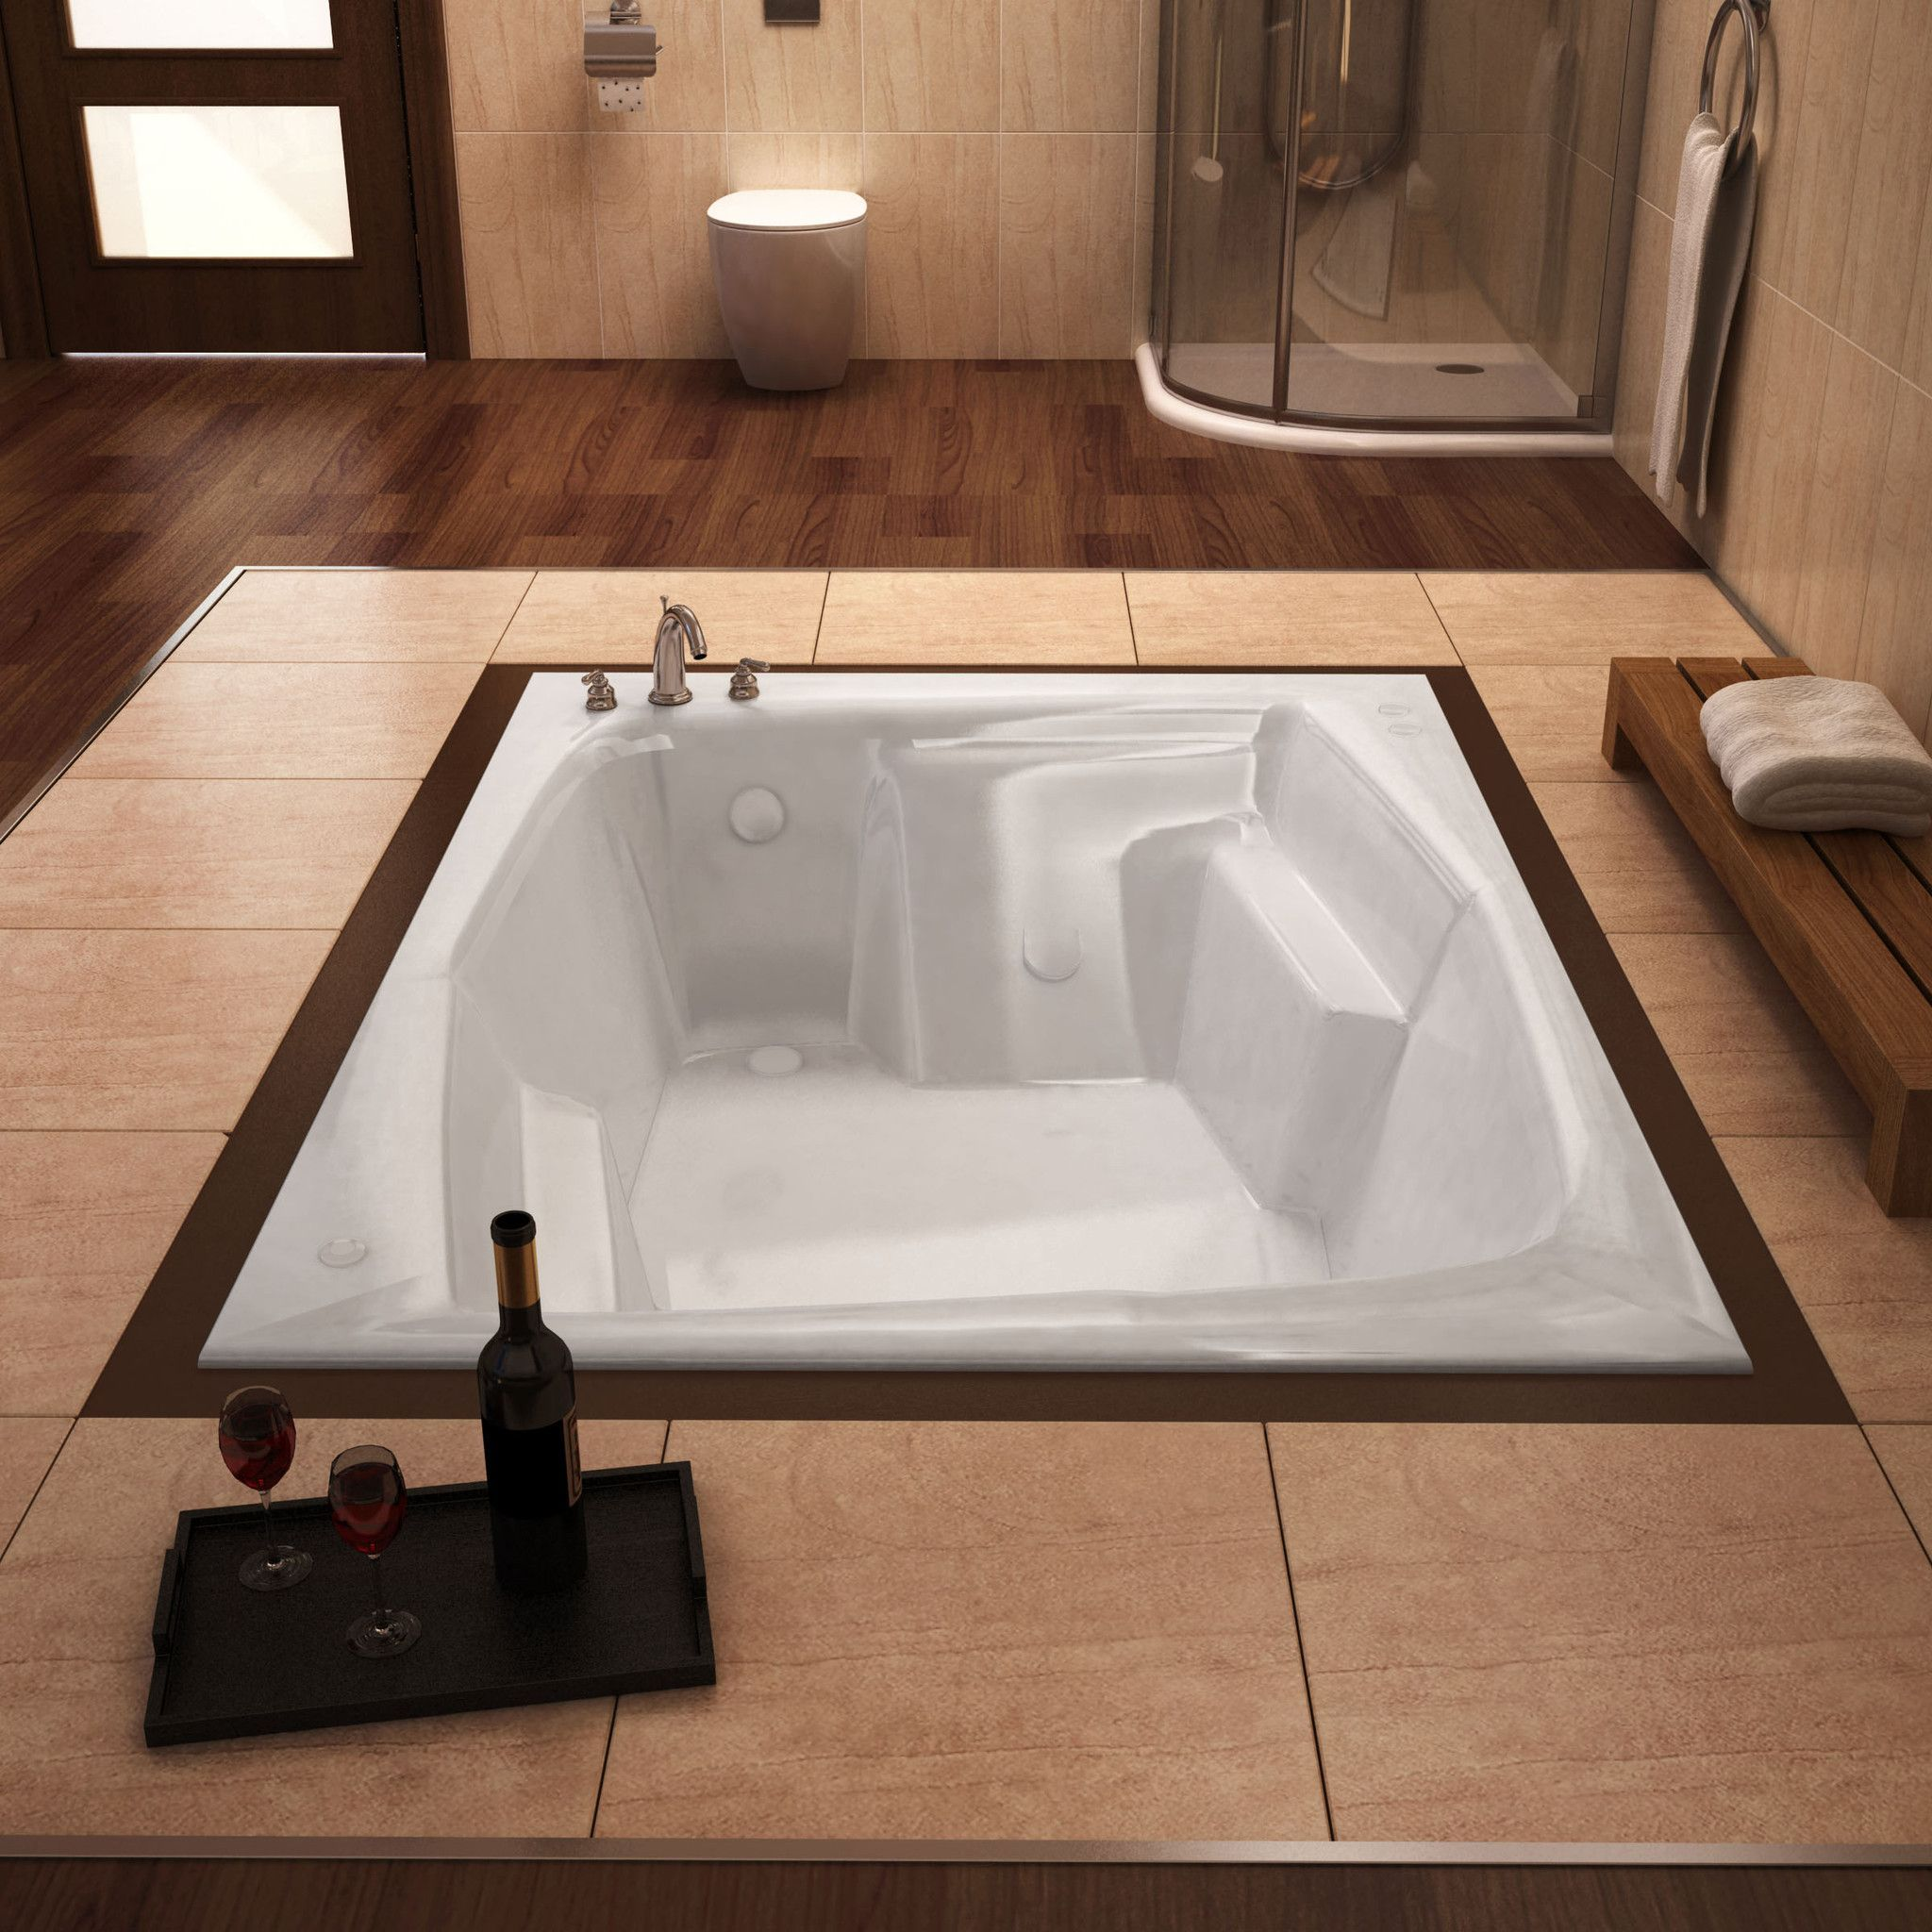 High Gloss White Finish Drain Placement Is Reversible Interior Of Tub Is Rectangular Shape Contemporary Desig Jetted Bath Tubs Drop In Bathtub Soaking Bathtubs